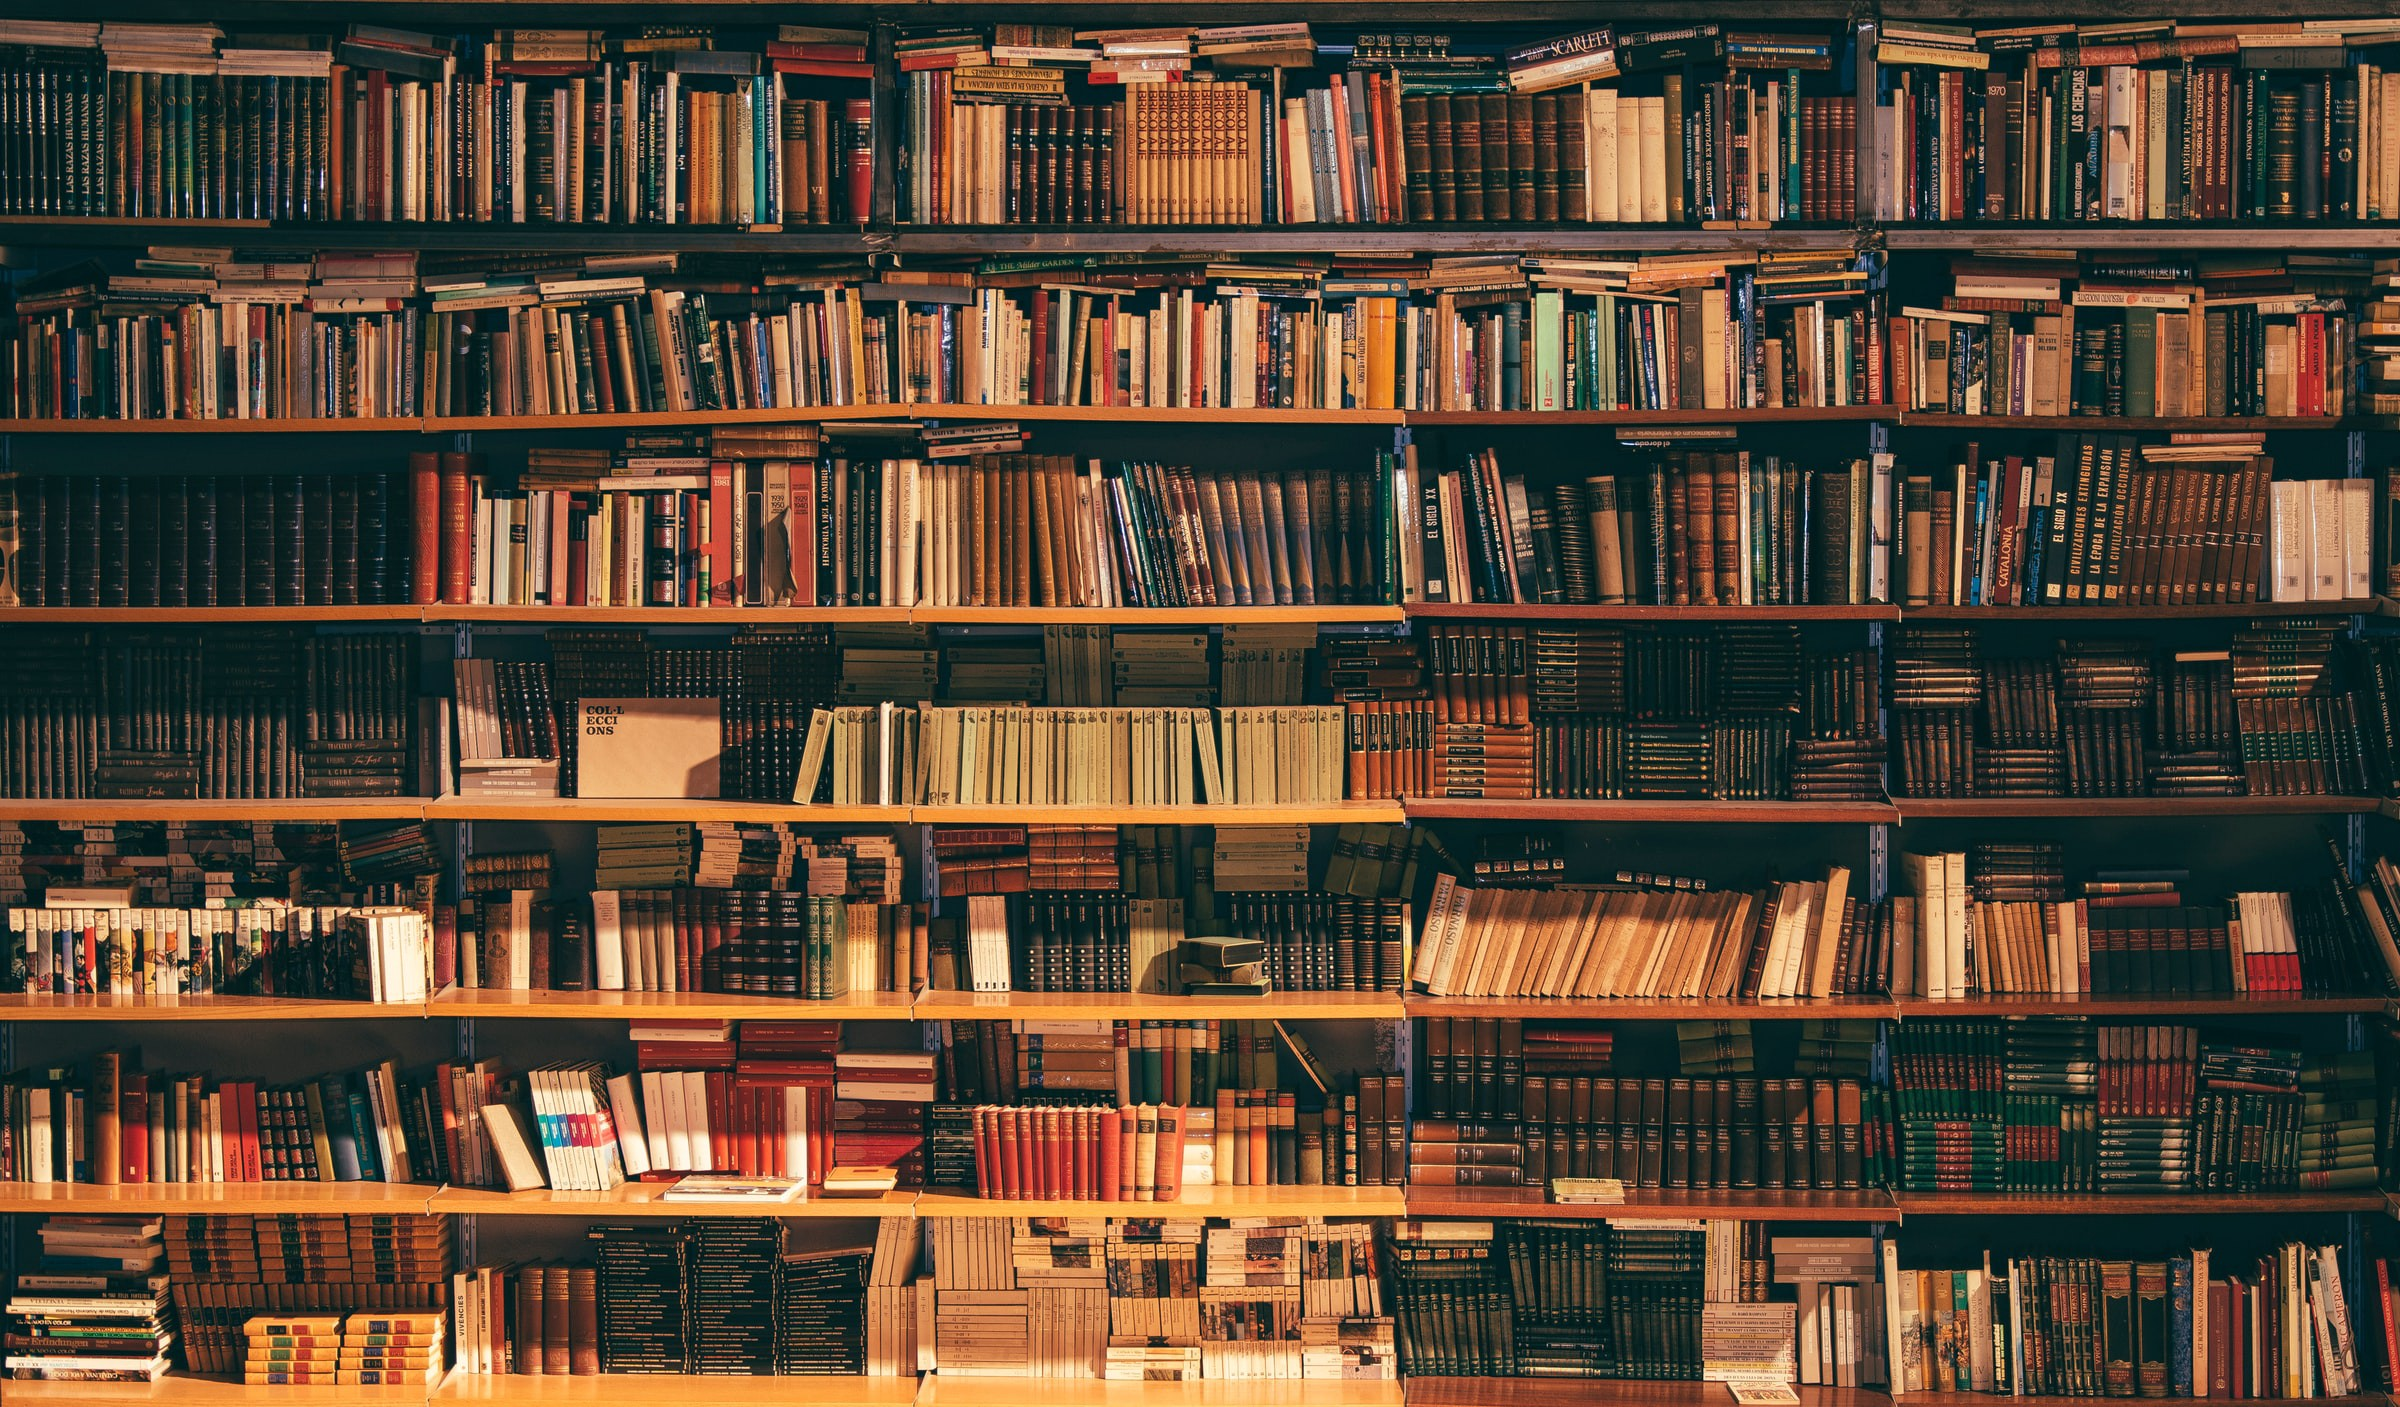 Shelves filled with books in a library